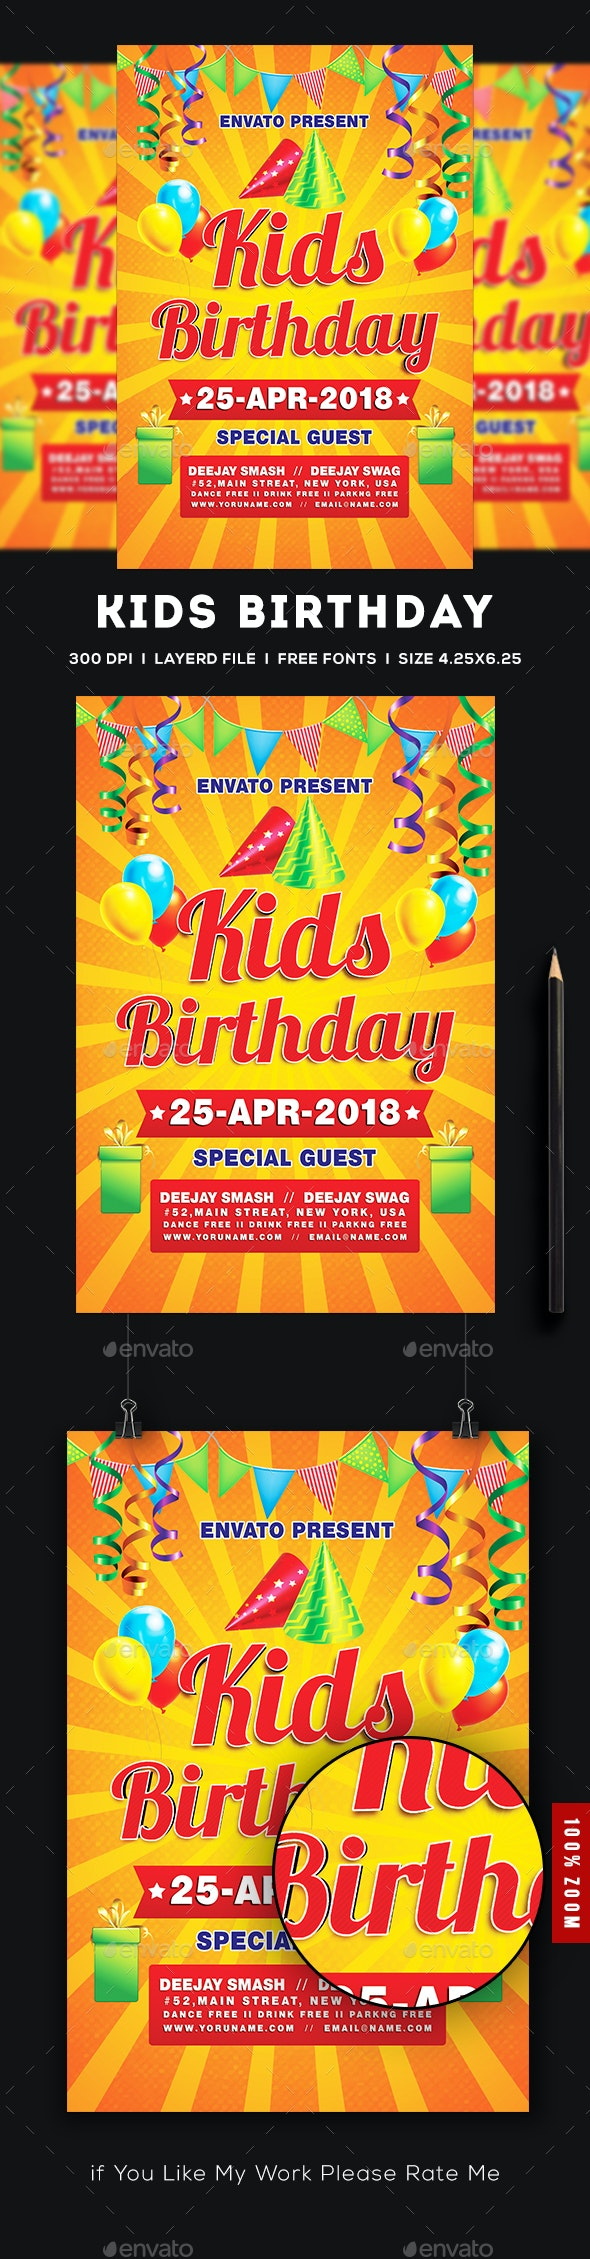 Kids Birthday Party Invitation - Clubs & Parties Events